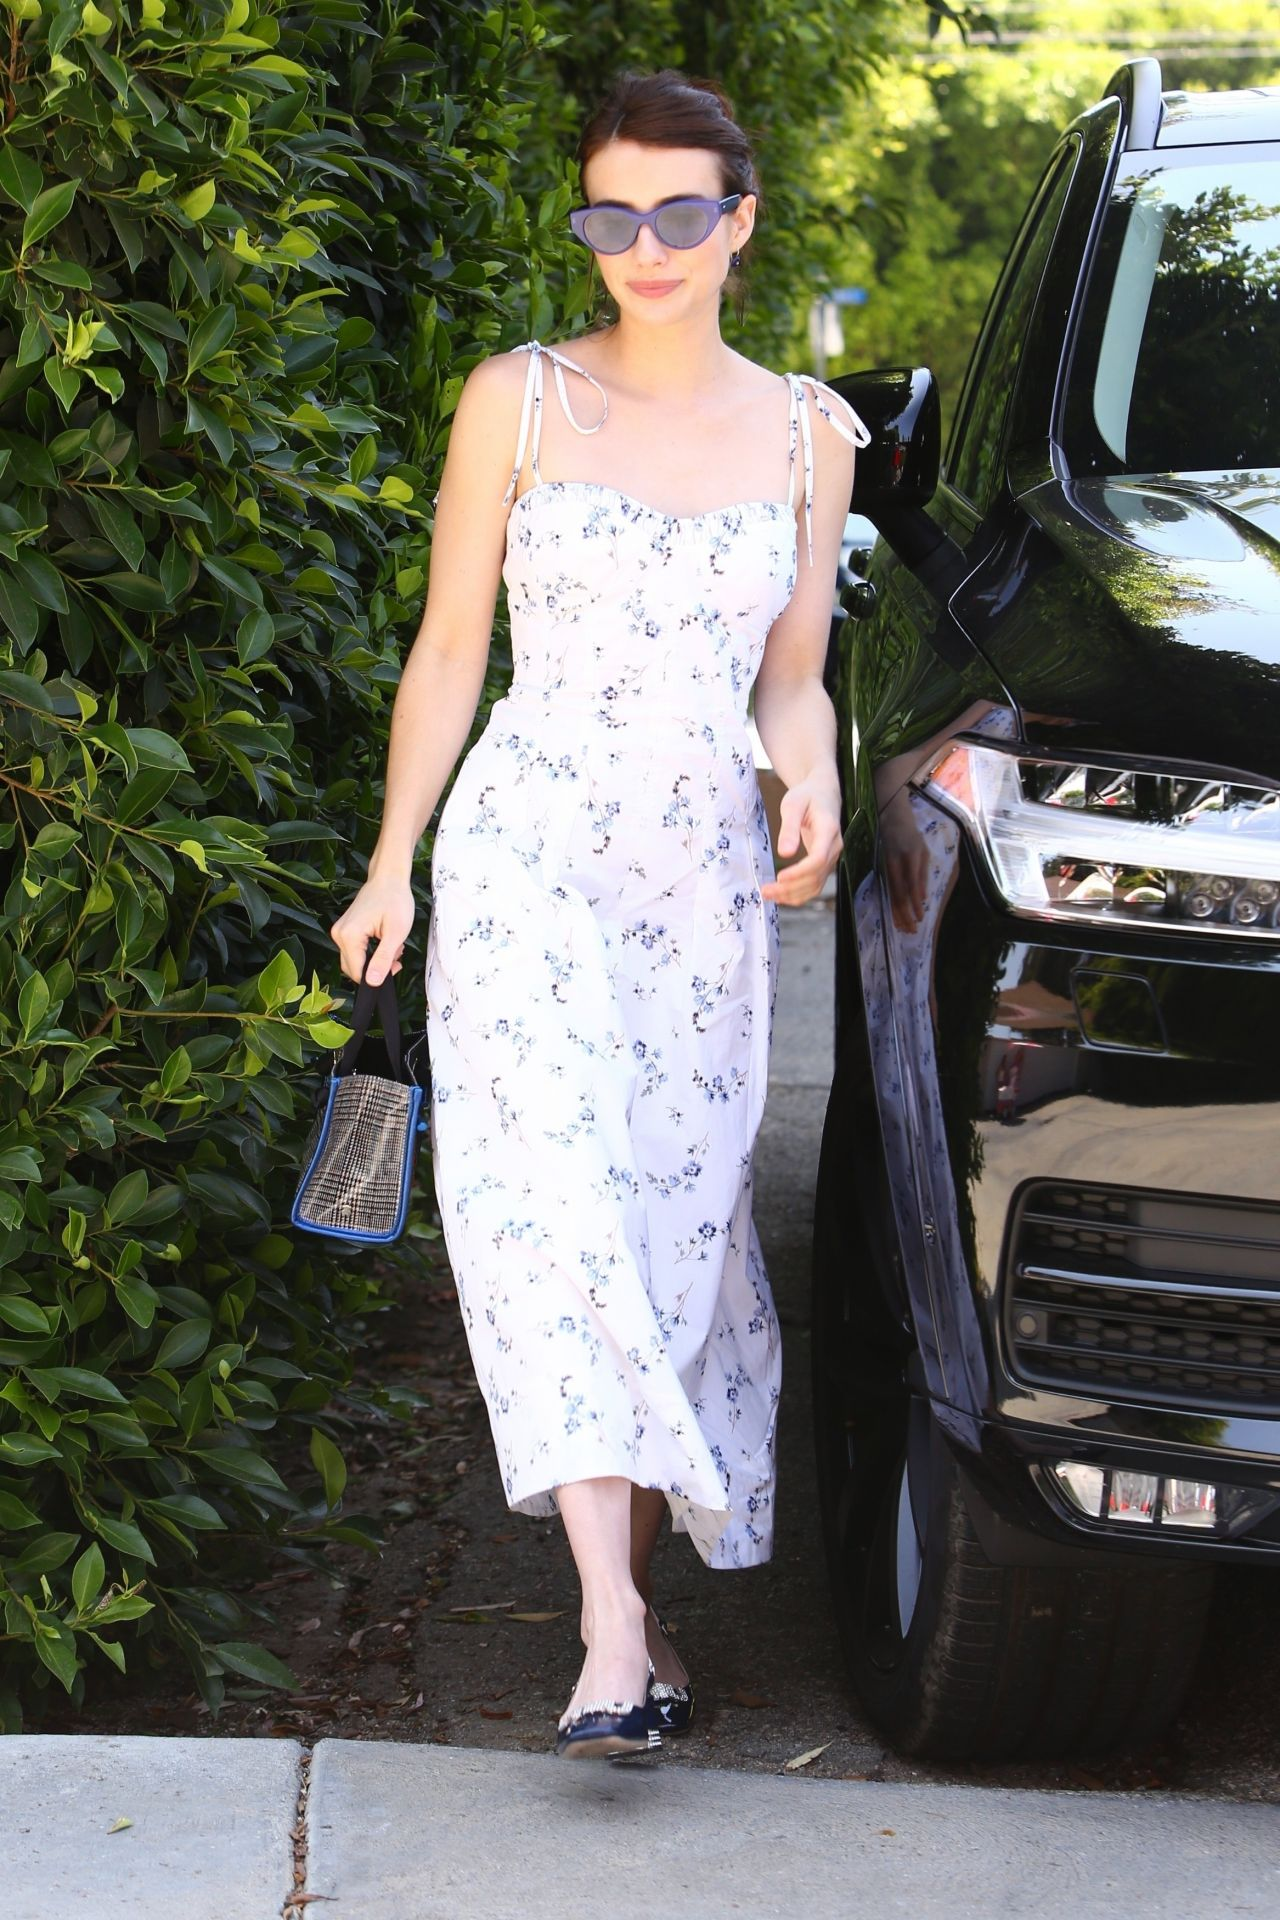 emma-roberts-in-rebecca-taylor-@-instyle-day-of-indulgence-party-in-brentwood